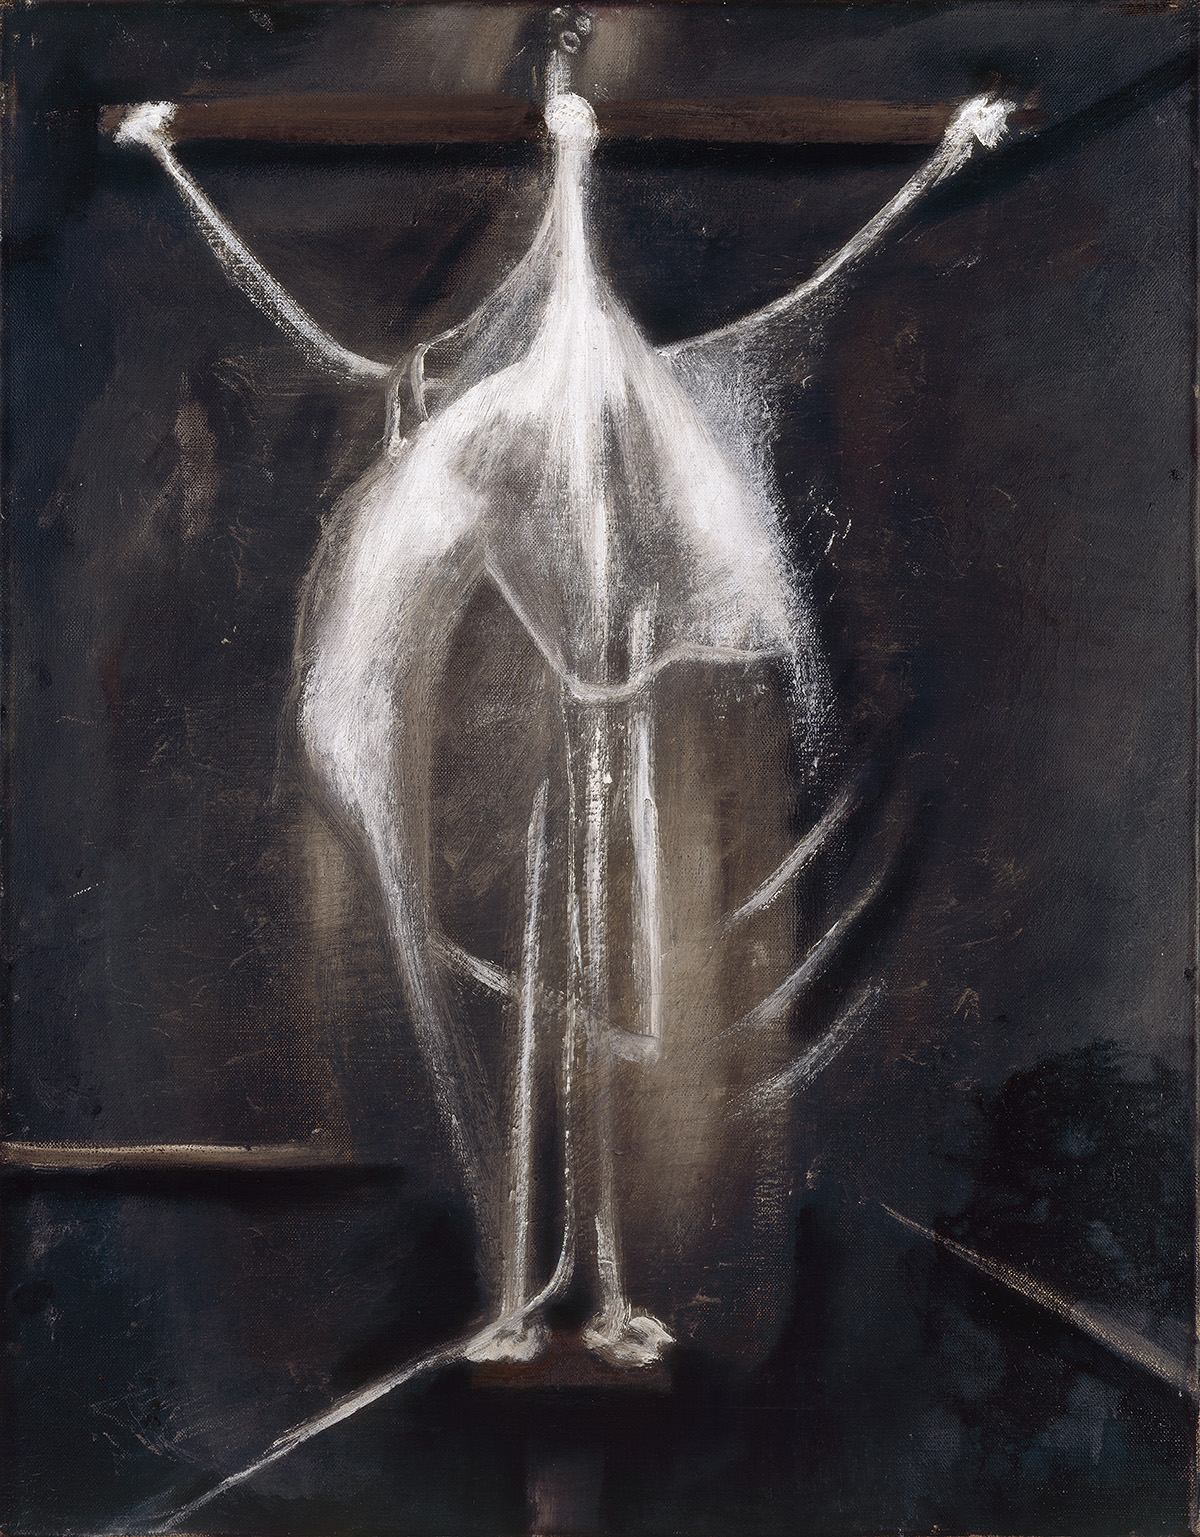 Francis Bacon, Crucifixion, 1933. Watercolour, gouache, pencil and black ink on paper. CR number 33-01. © The Estate of Francis Bacon / DACS London 2020. All rights reserved.